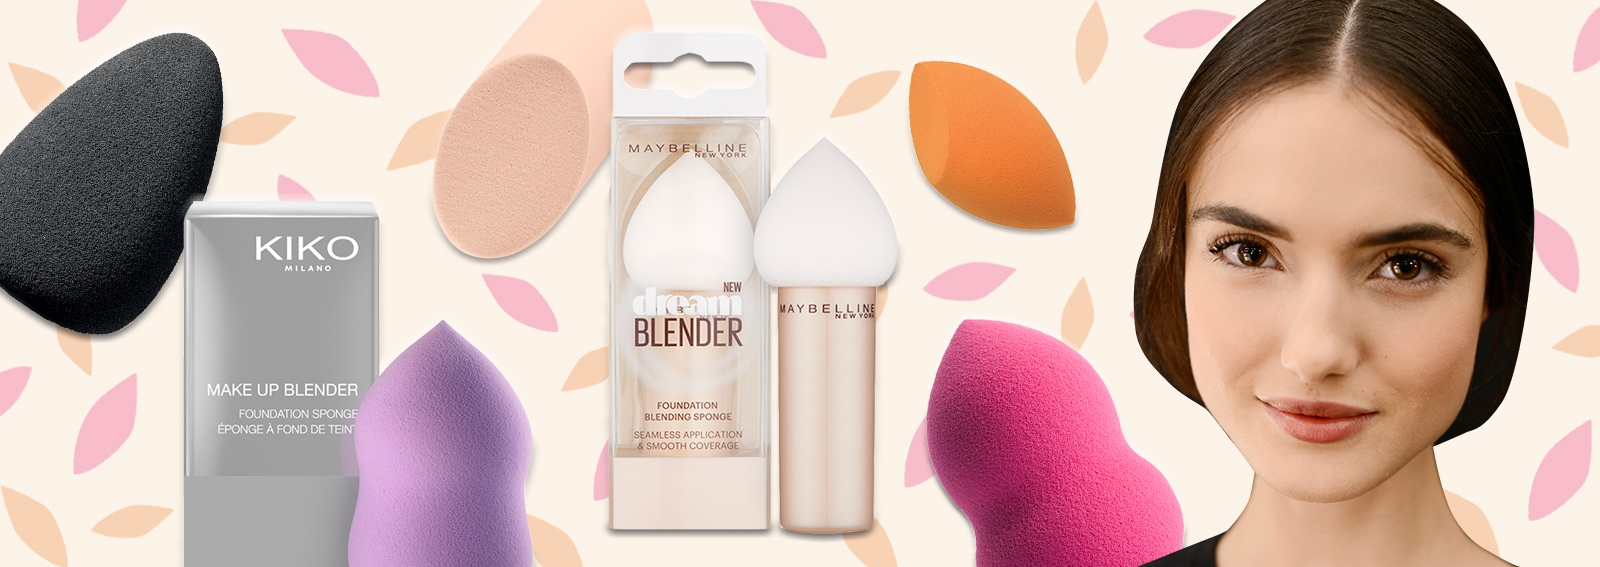 cover-beauty-blender-e-le-spugnette-trucco-desktop